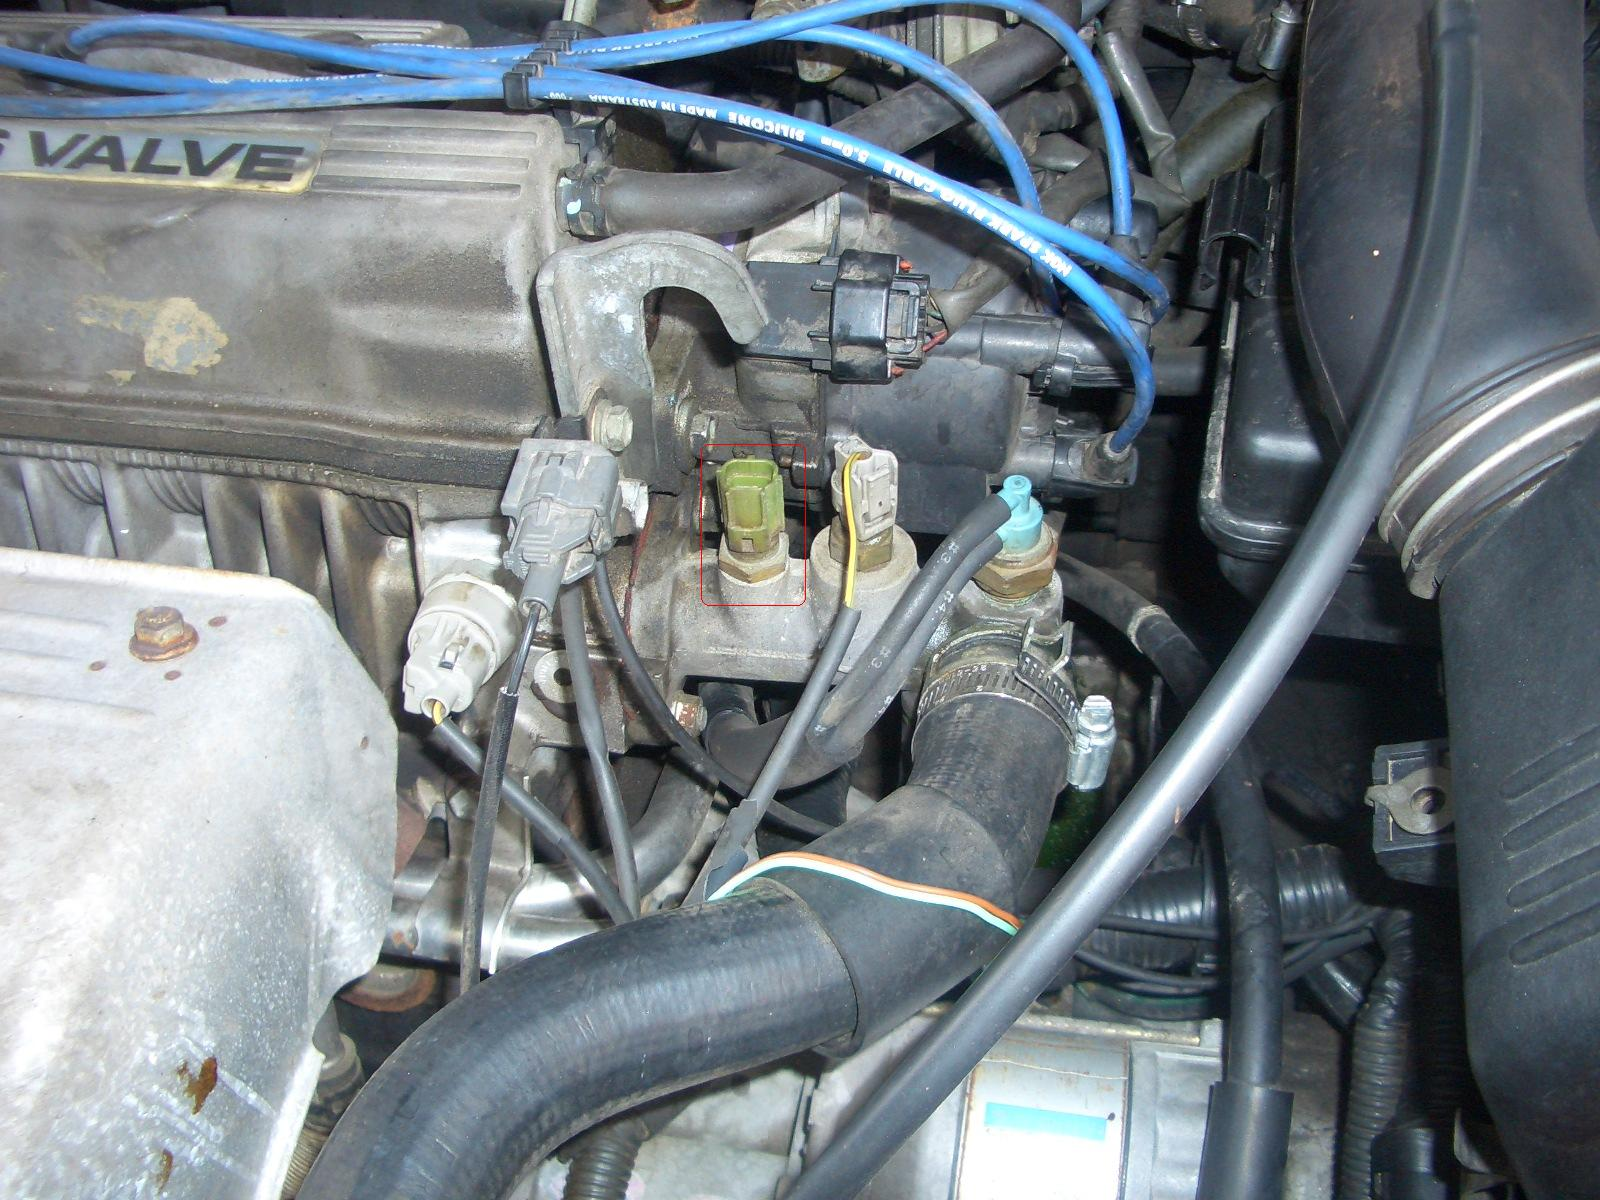 1177827 Xr600r Electrical System Questions likewise Versys 650 Wiring Diagram likewise Honda Rebel Problem 46314 further 2008 Civic Hybrid Battery Location together with 2003 Klx 125 Manual. on klr 650 wiring problem